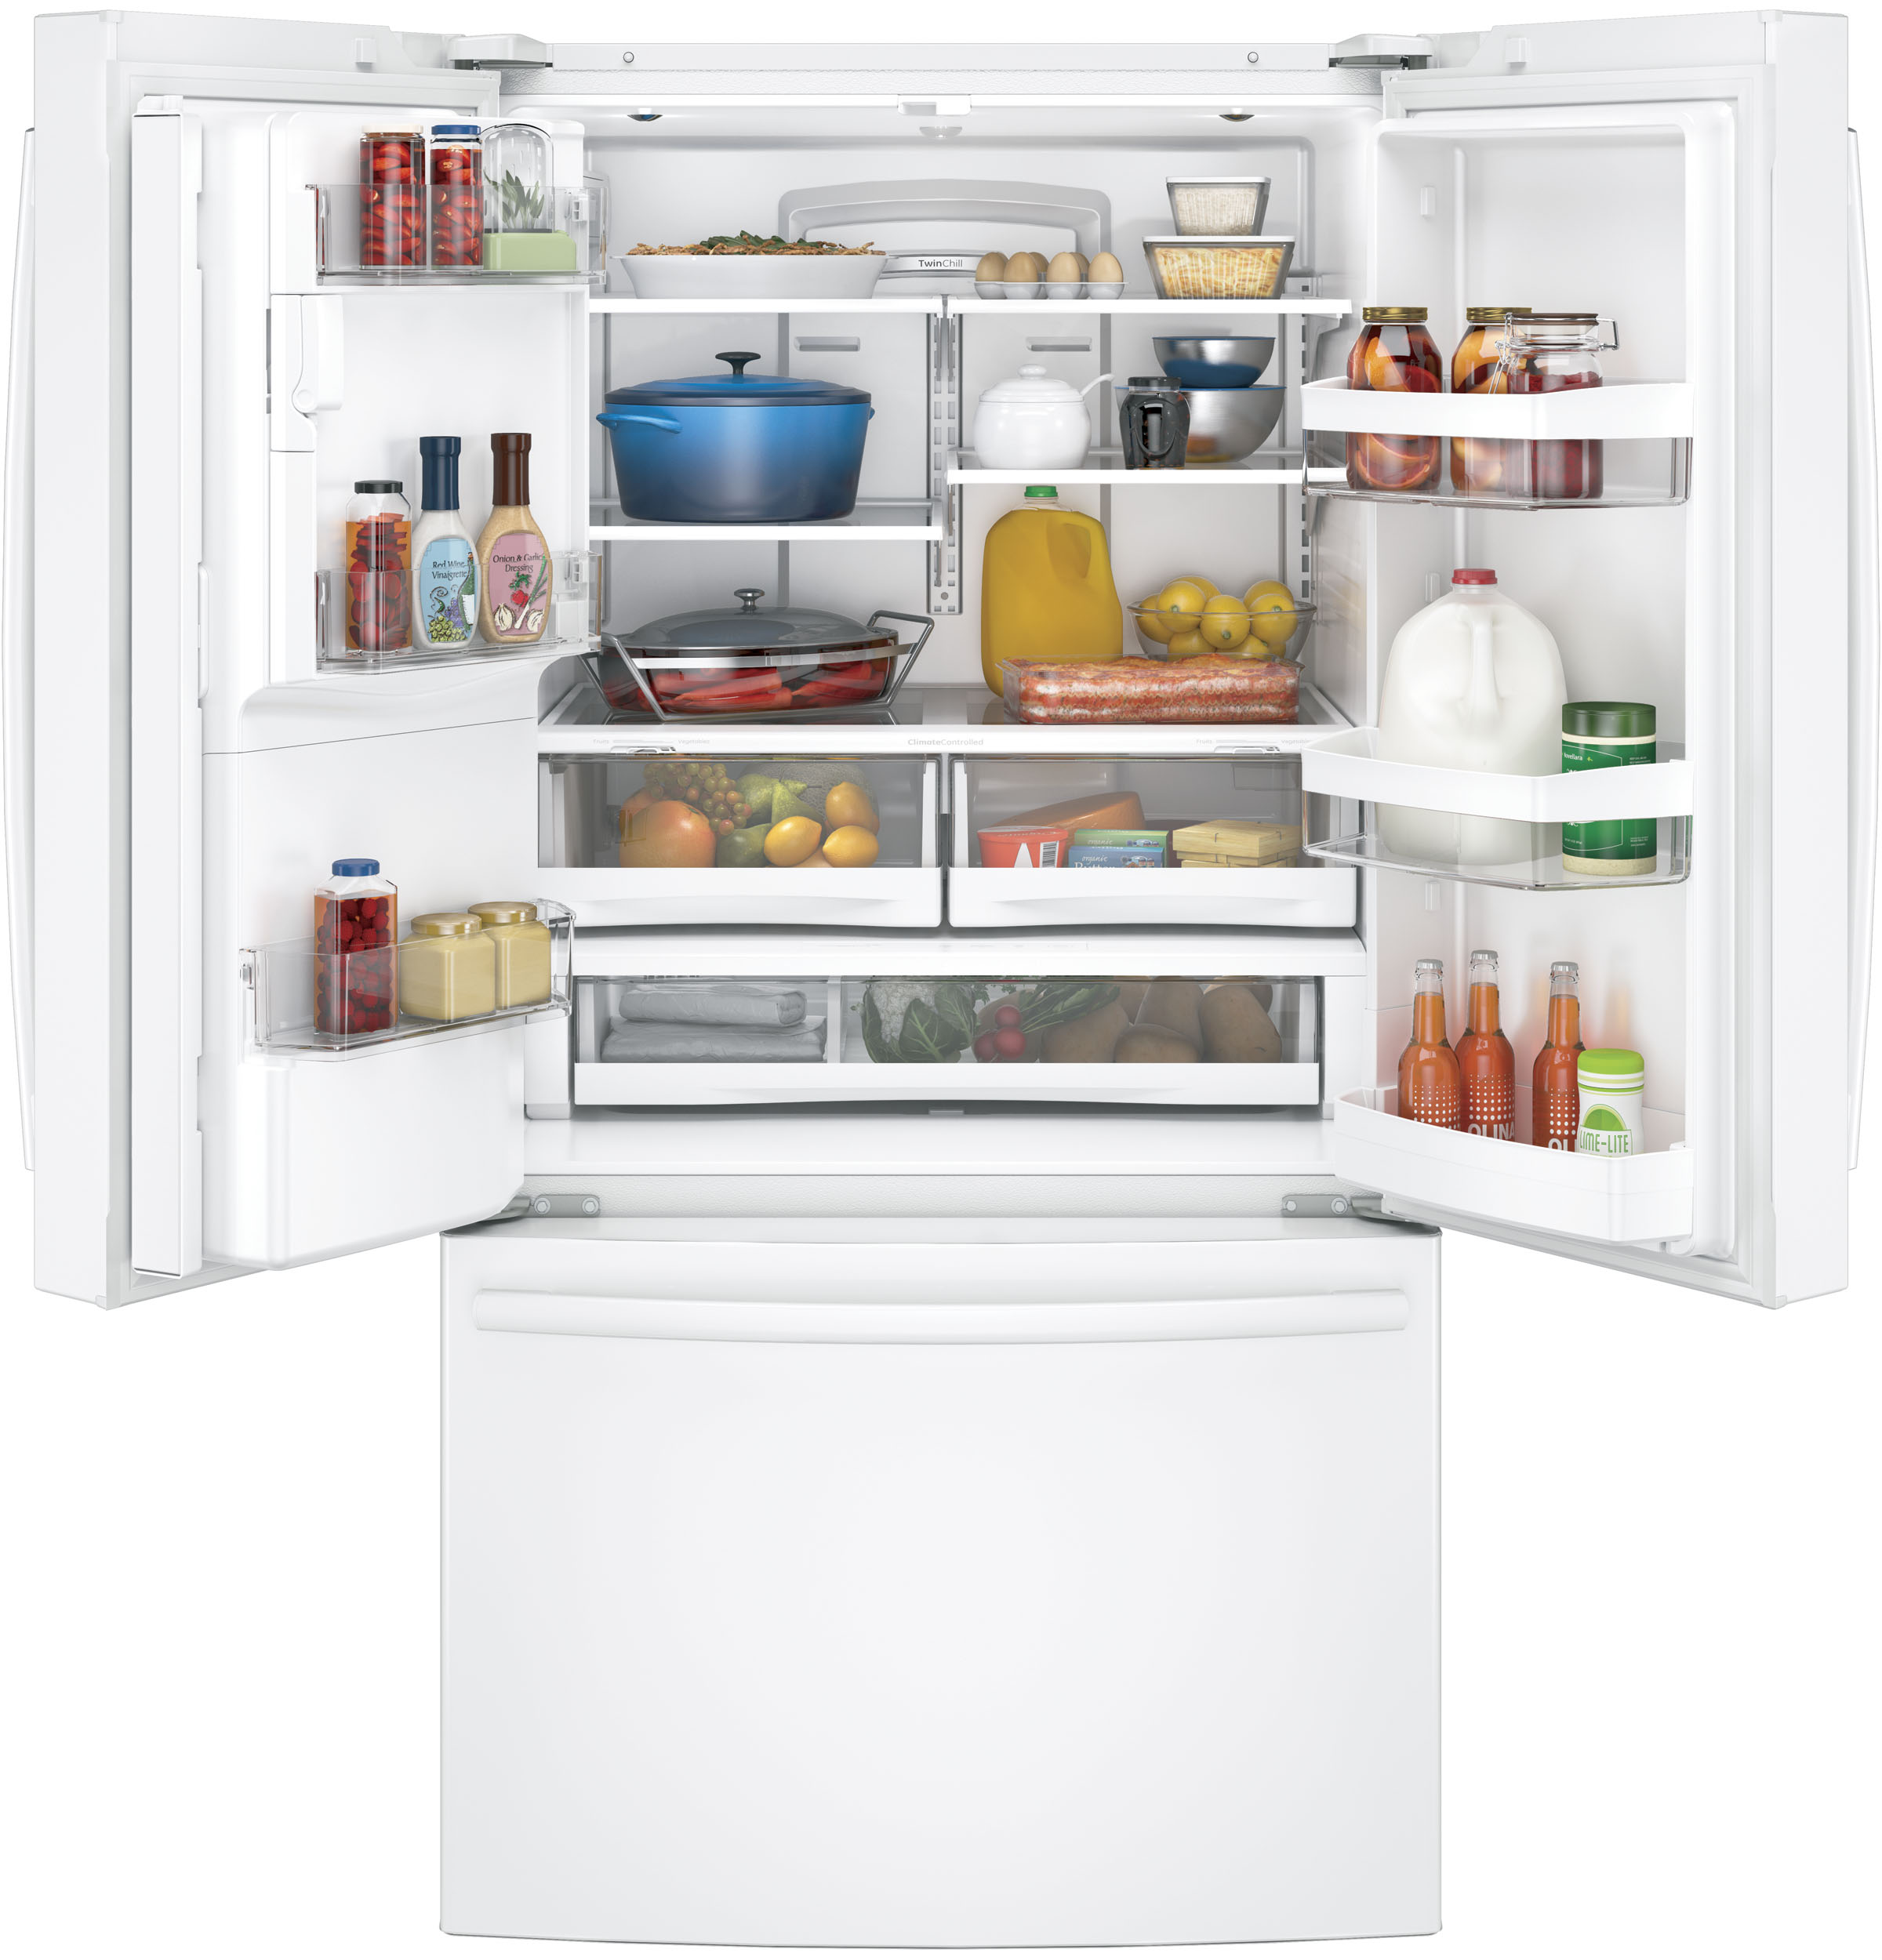 Model: GFE28GGKWW | GE GE® ENERGY STAR® 27.8 Cu. Ft. French-Door Refrigerator